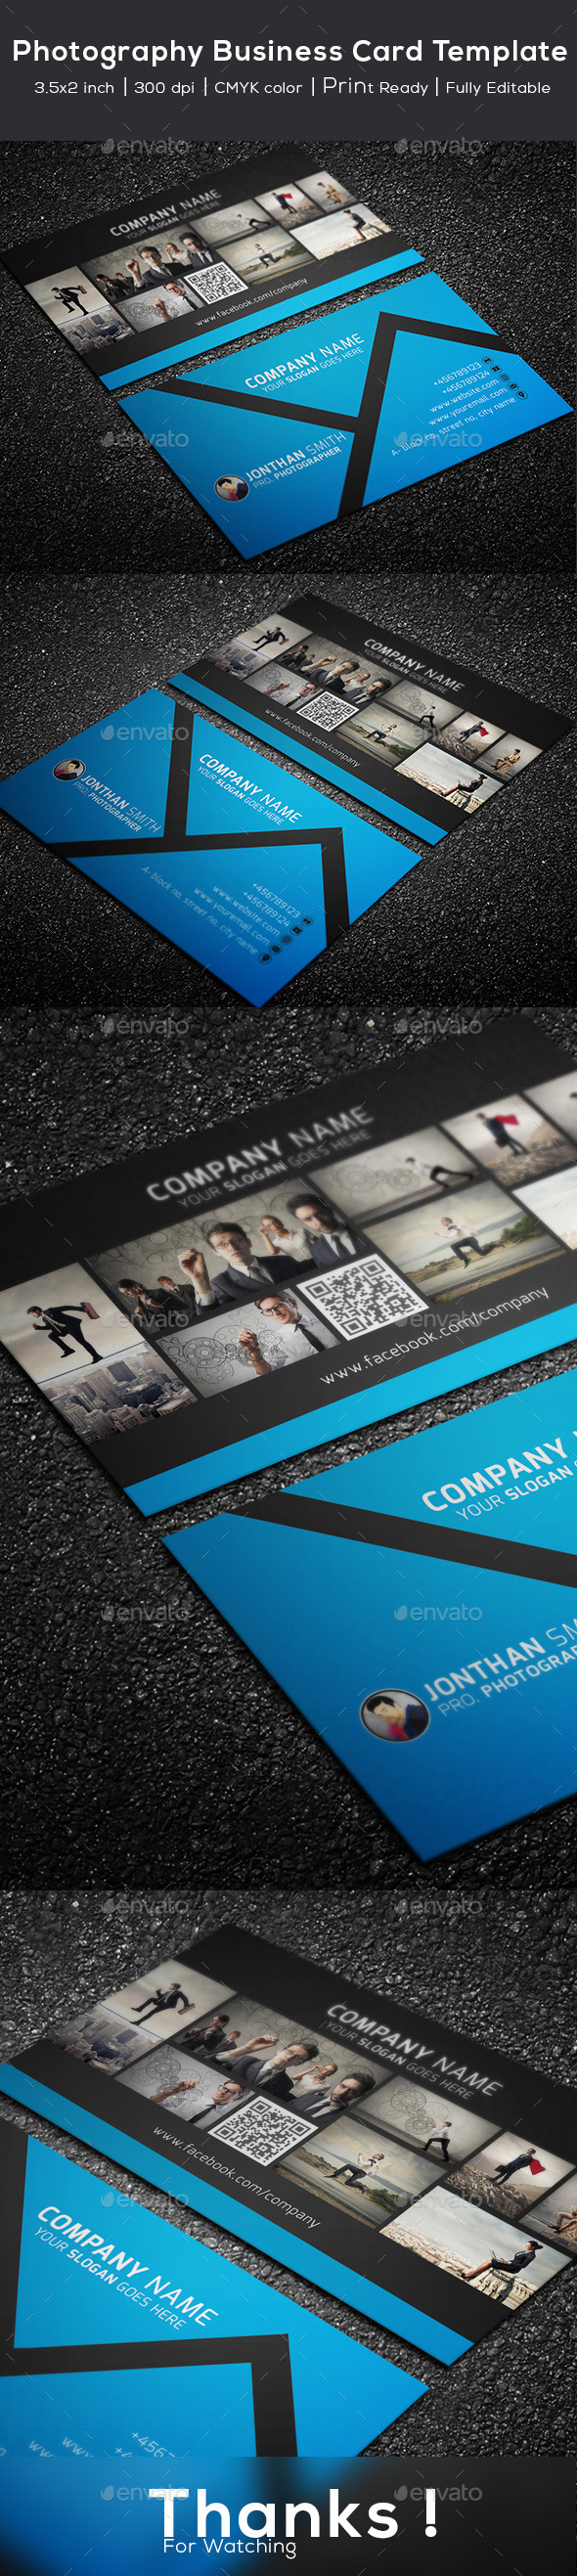 GraphicRiver Photography Business Card Template 10852200